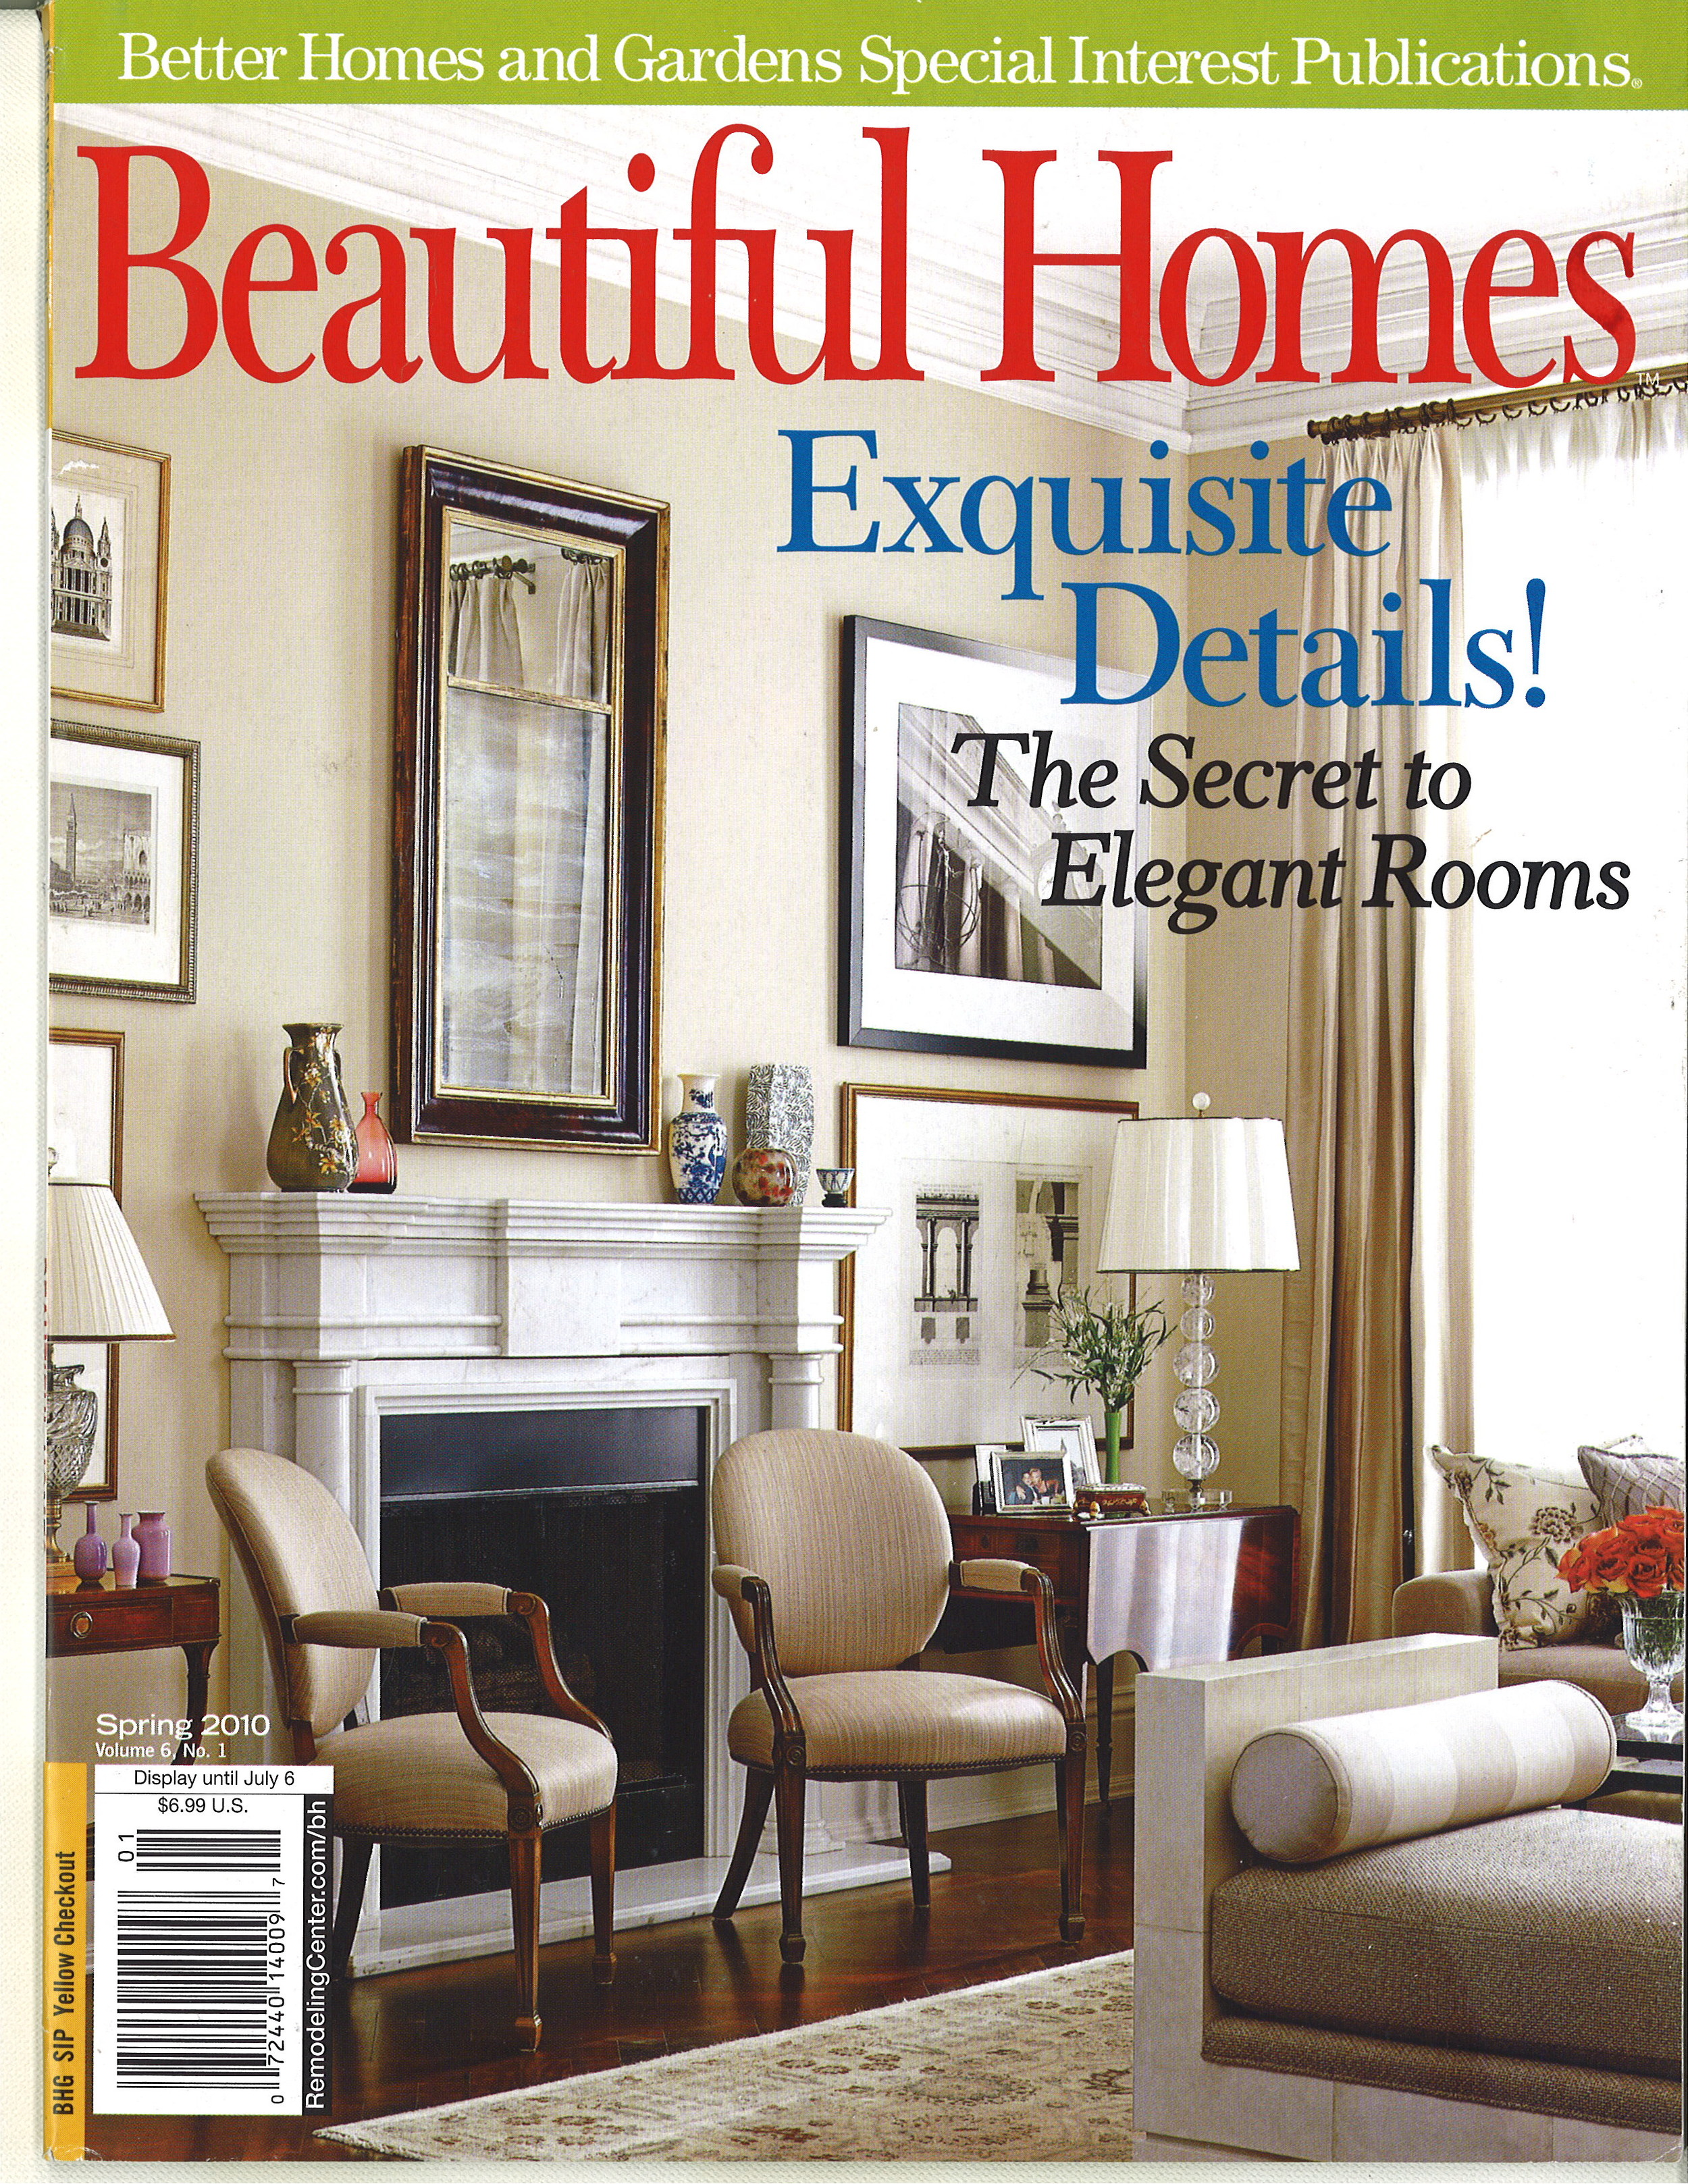 2010Spring_BeautifulHomes_FireflyHill_Page_01.jpg